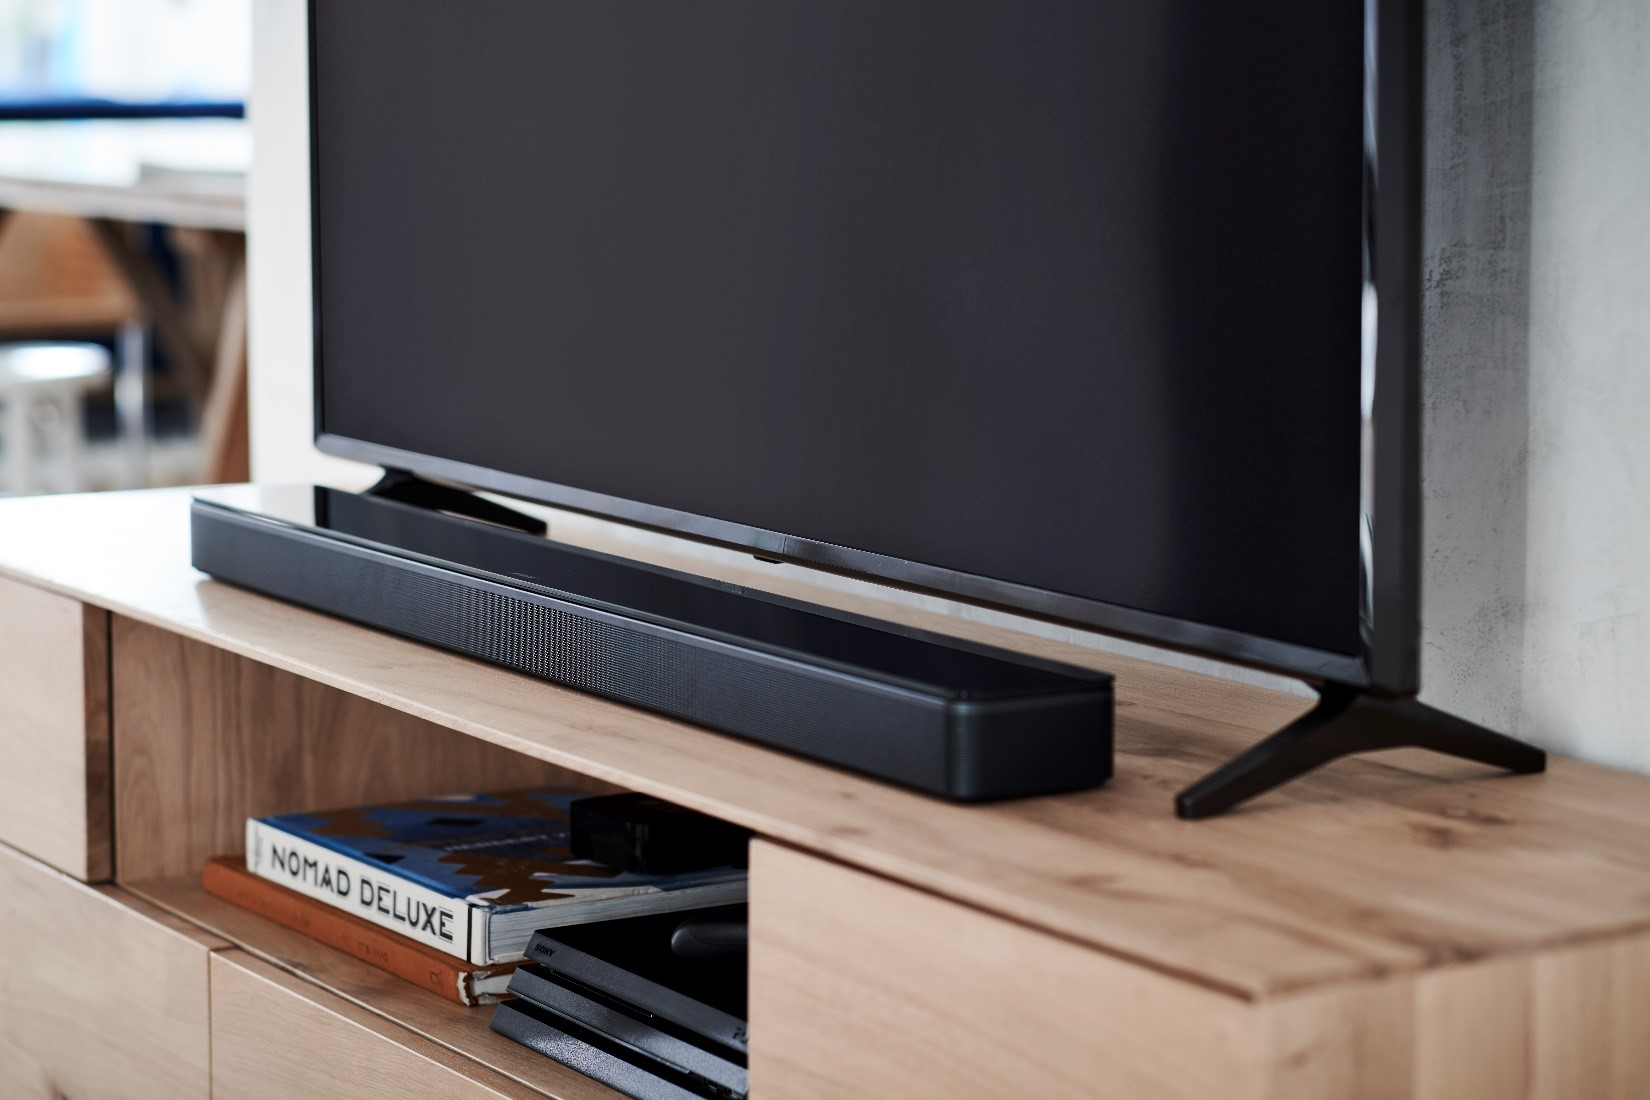 Bose family of smart speakers and soundbars